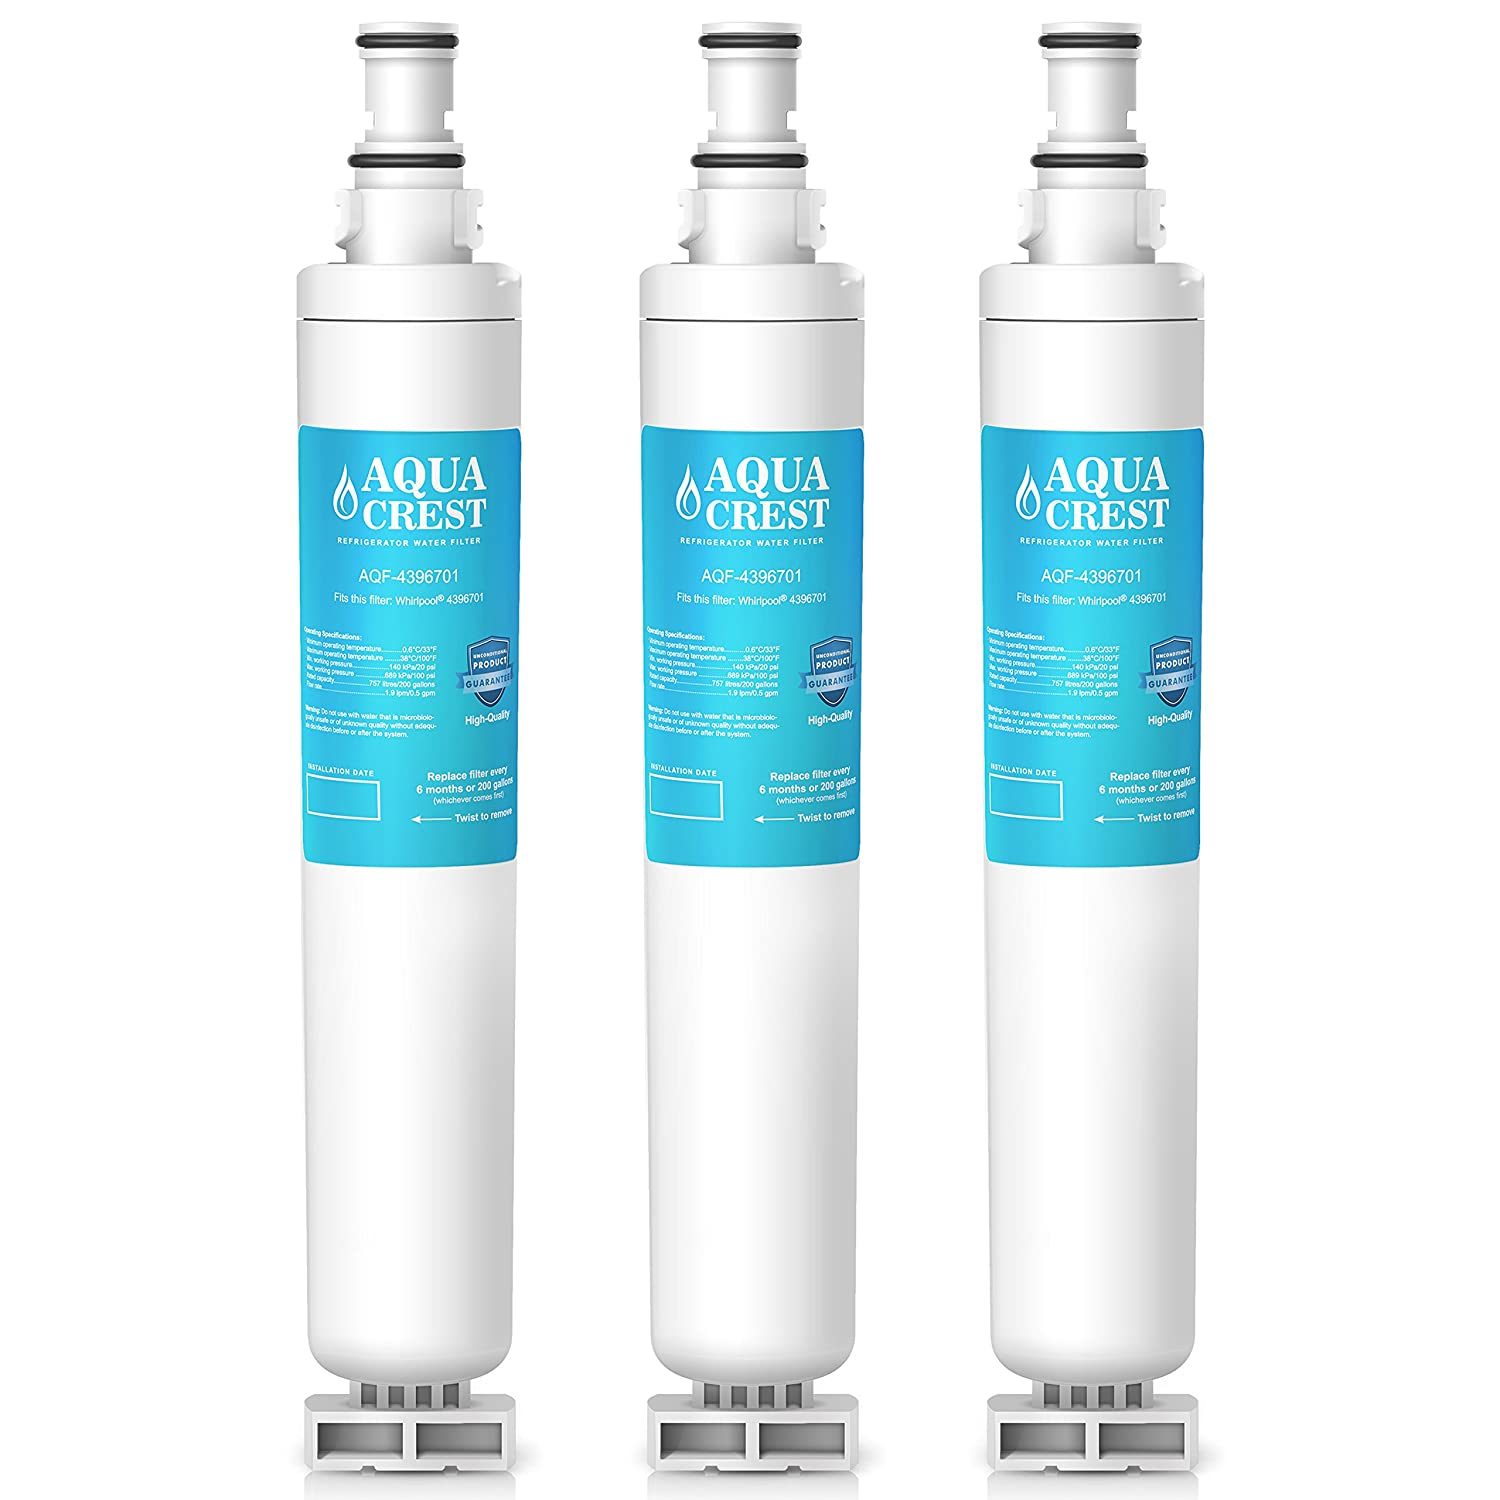 AQUACREST Replacement 4396701 Refrigerator Water Filter, Compatible with Whirlpool 4396701 4396702 EDR6D1, EveryDrop Filter 6, Kenmore 9915 46-9915 (pack of 3)